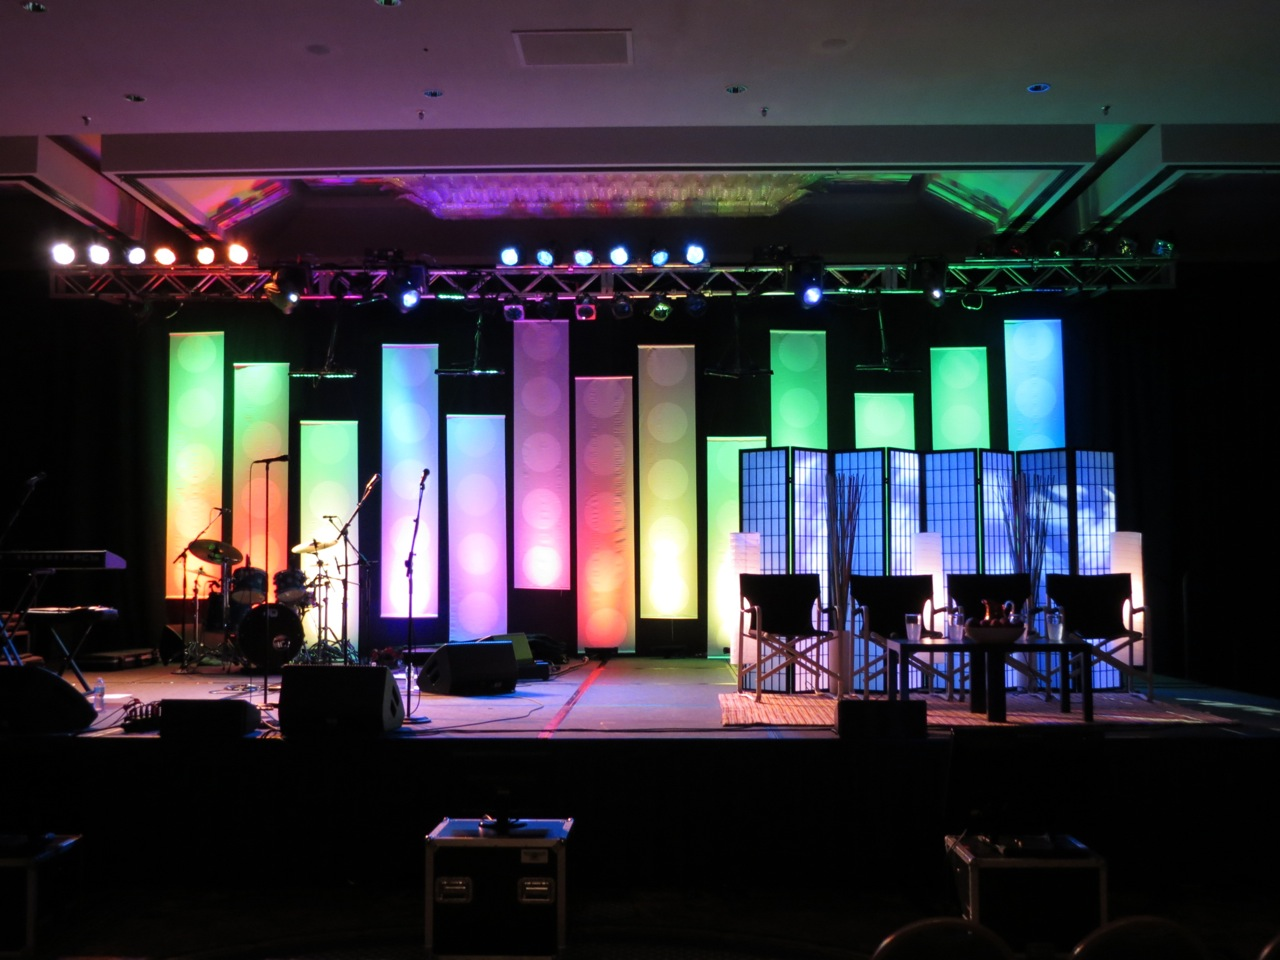 dot banners church stage design ideas church stage design ideas - Church Stage Design Ideas For Cheap